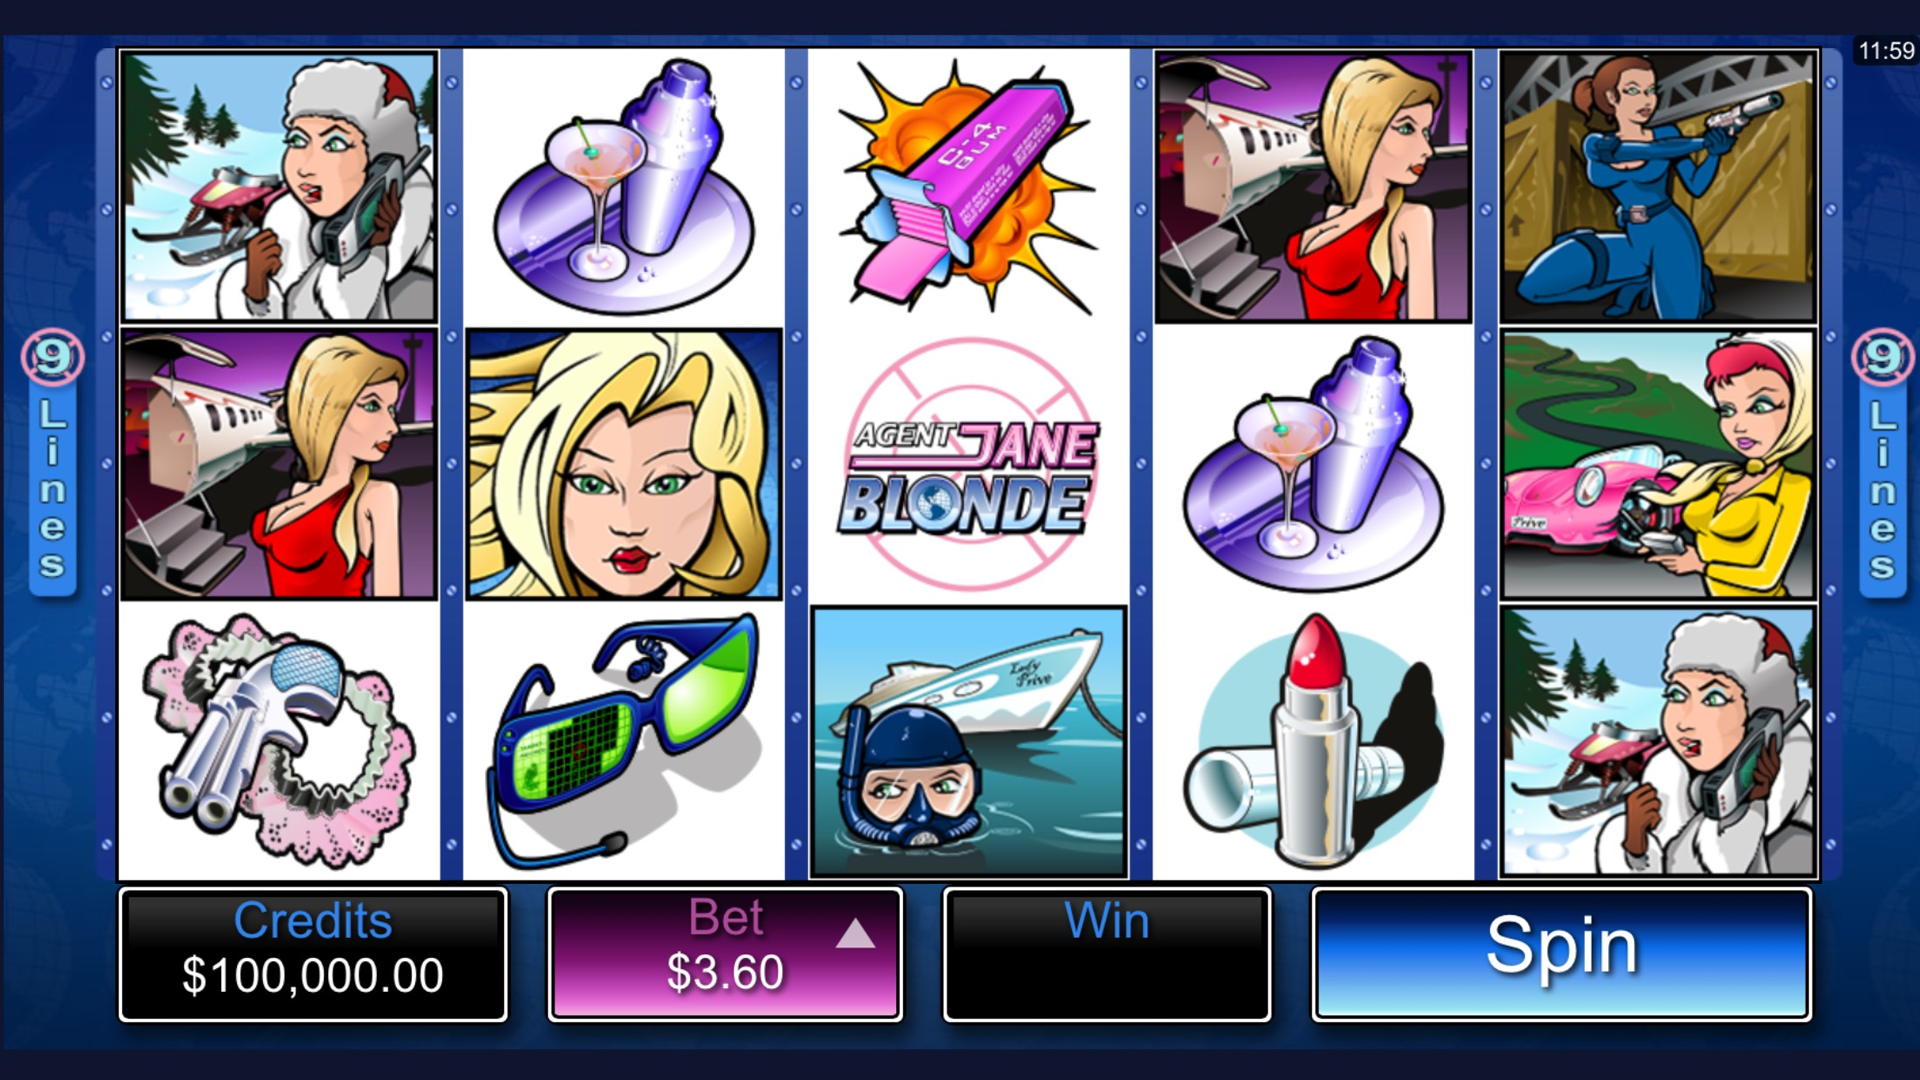 Hit it rich slots free download